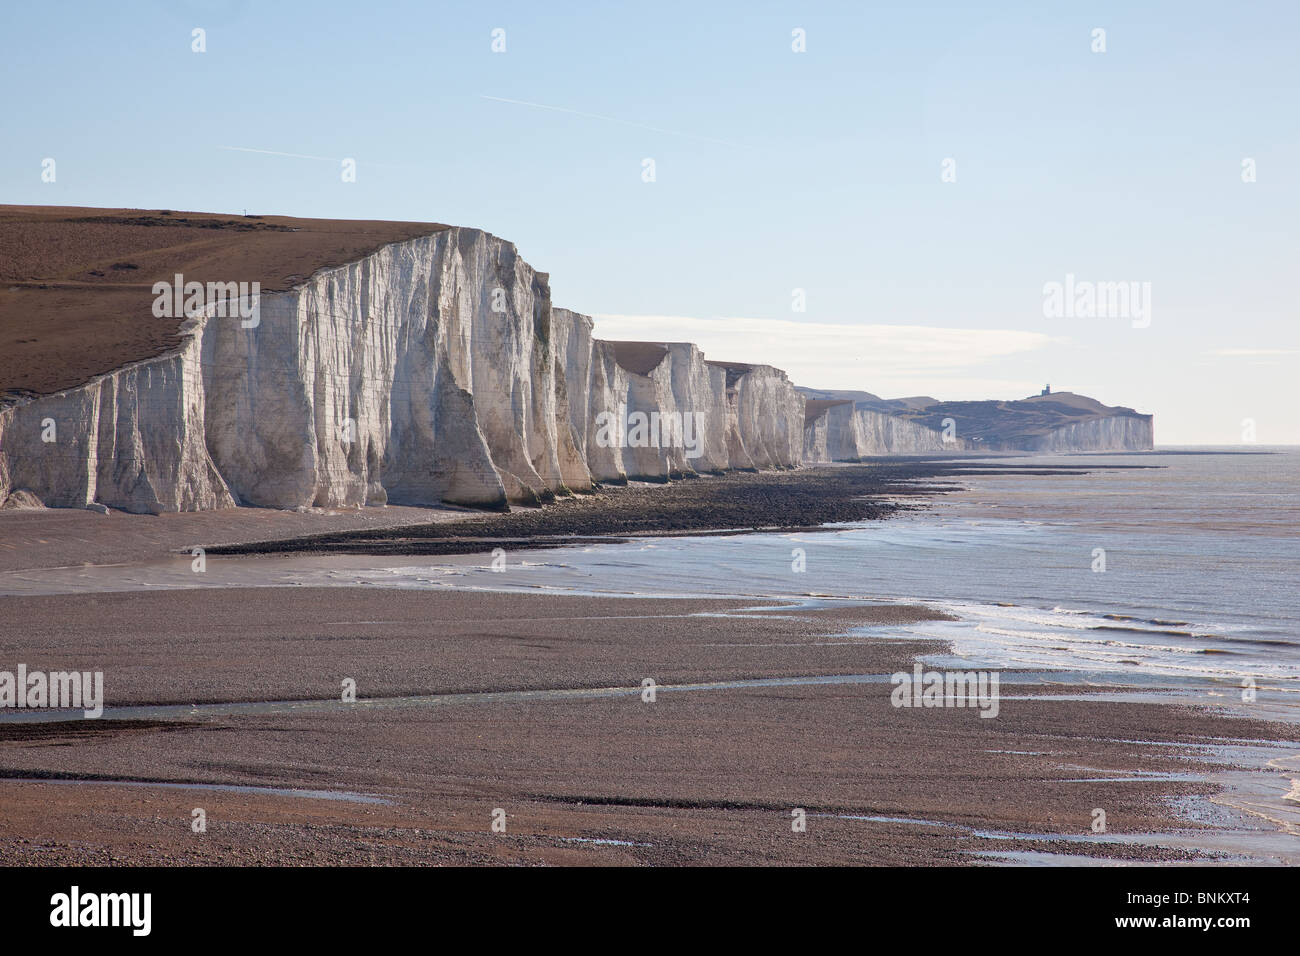 Coastguard cottages at Cuckmere Haven, Seaford, overlooking part of the Seven Sisters cliffs range, East Sussex, Stock Photo